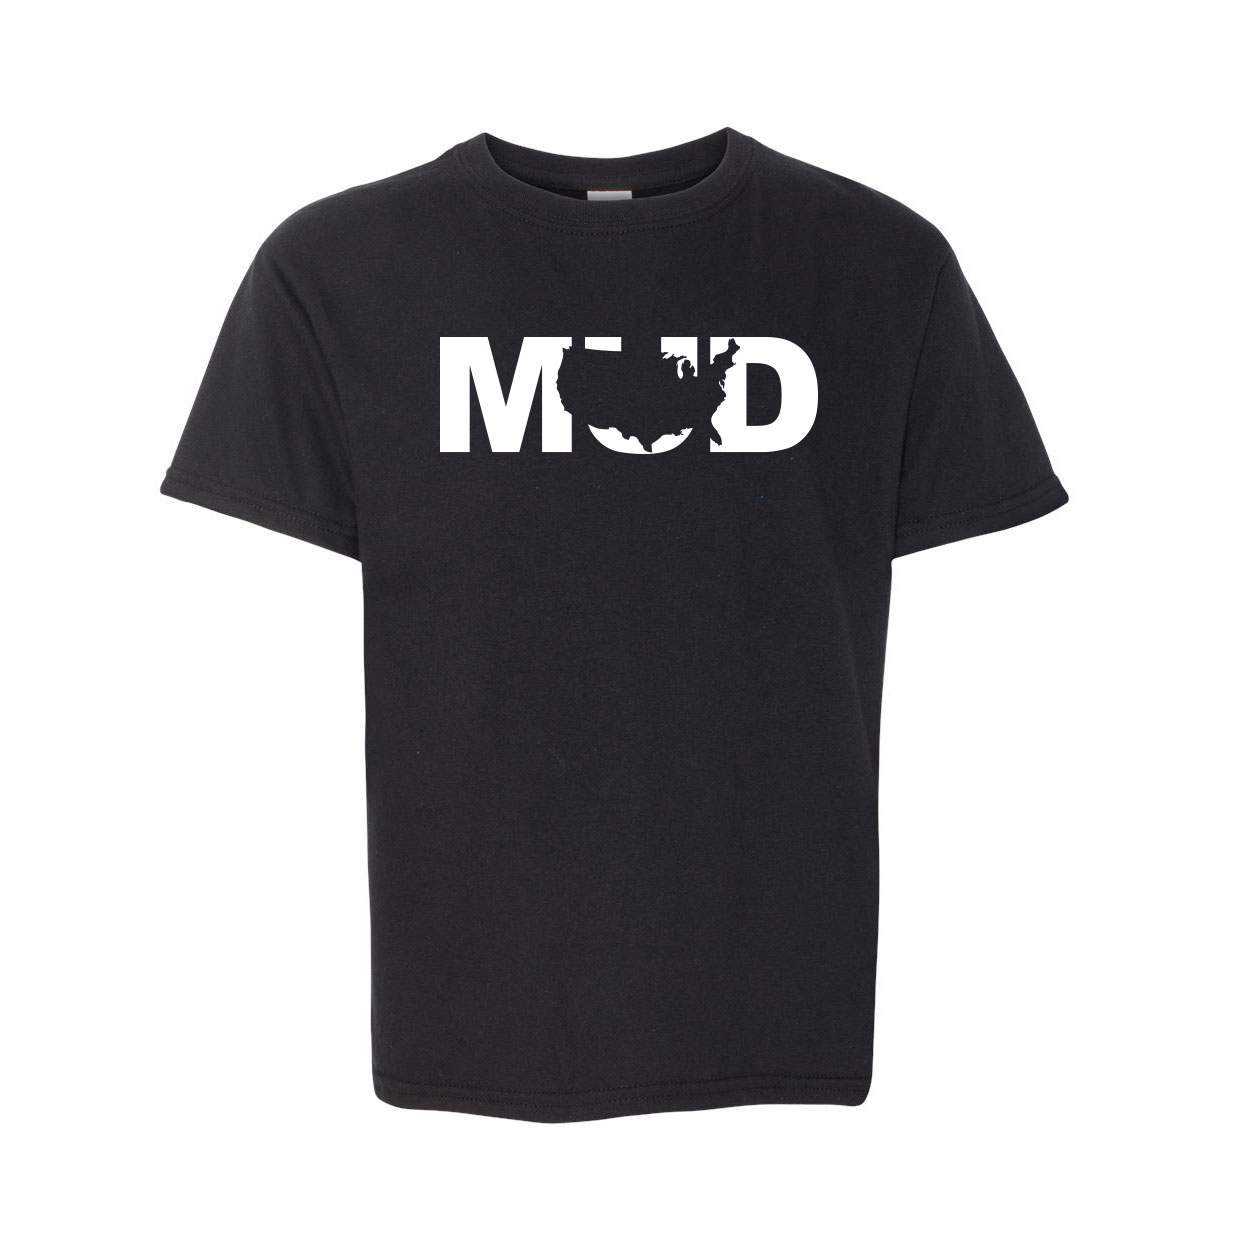 Mud United States Classic Youth T-Shirt Black (White Logo)